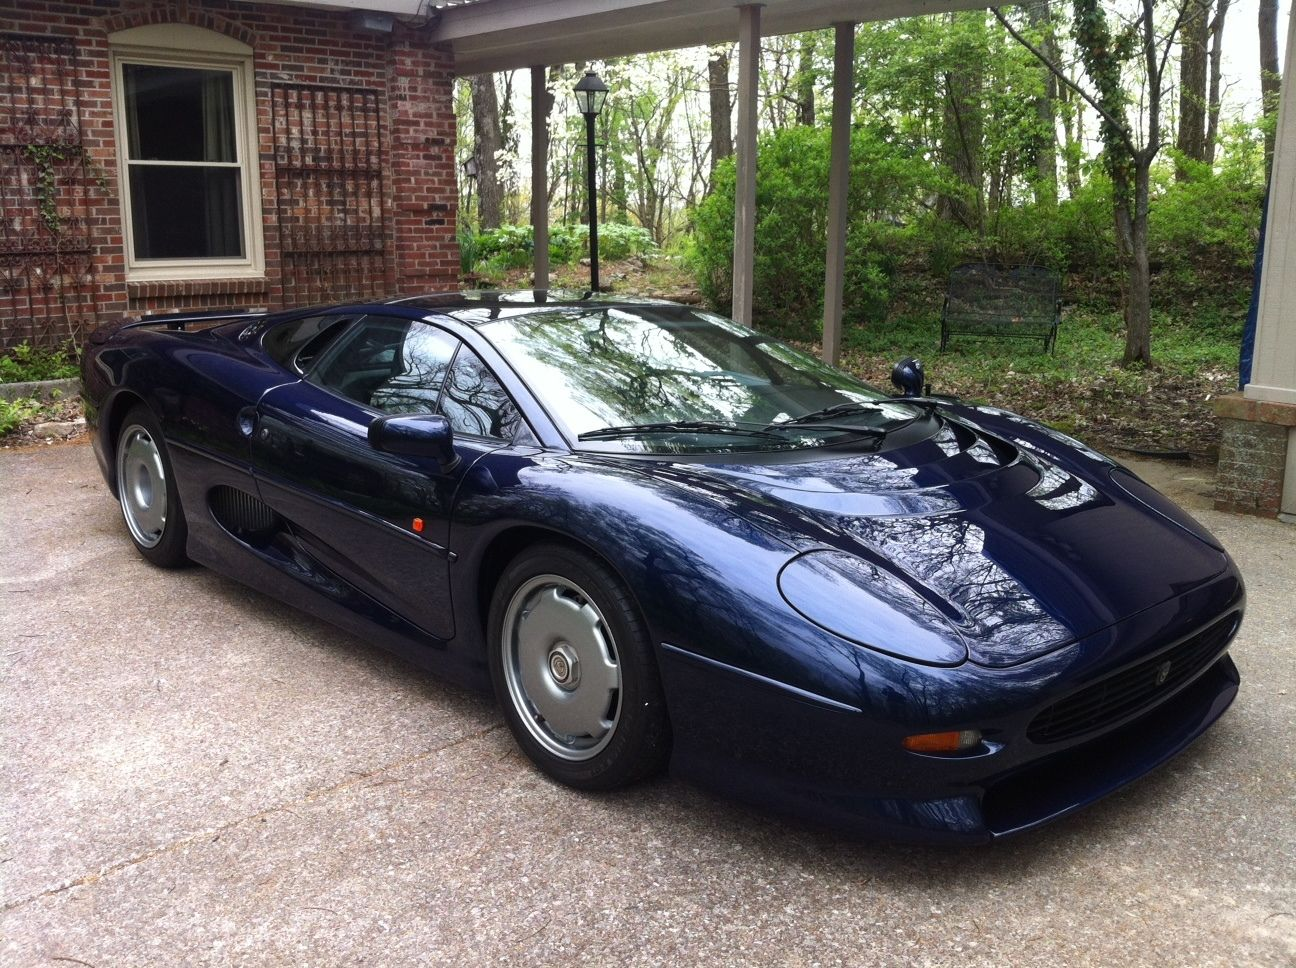 Jaguar Xj220 For Sale >> The Last Jaguar XJ220 Ever Built Is For Sale